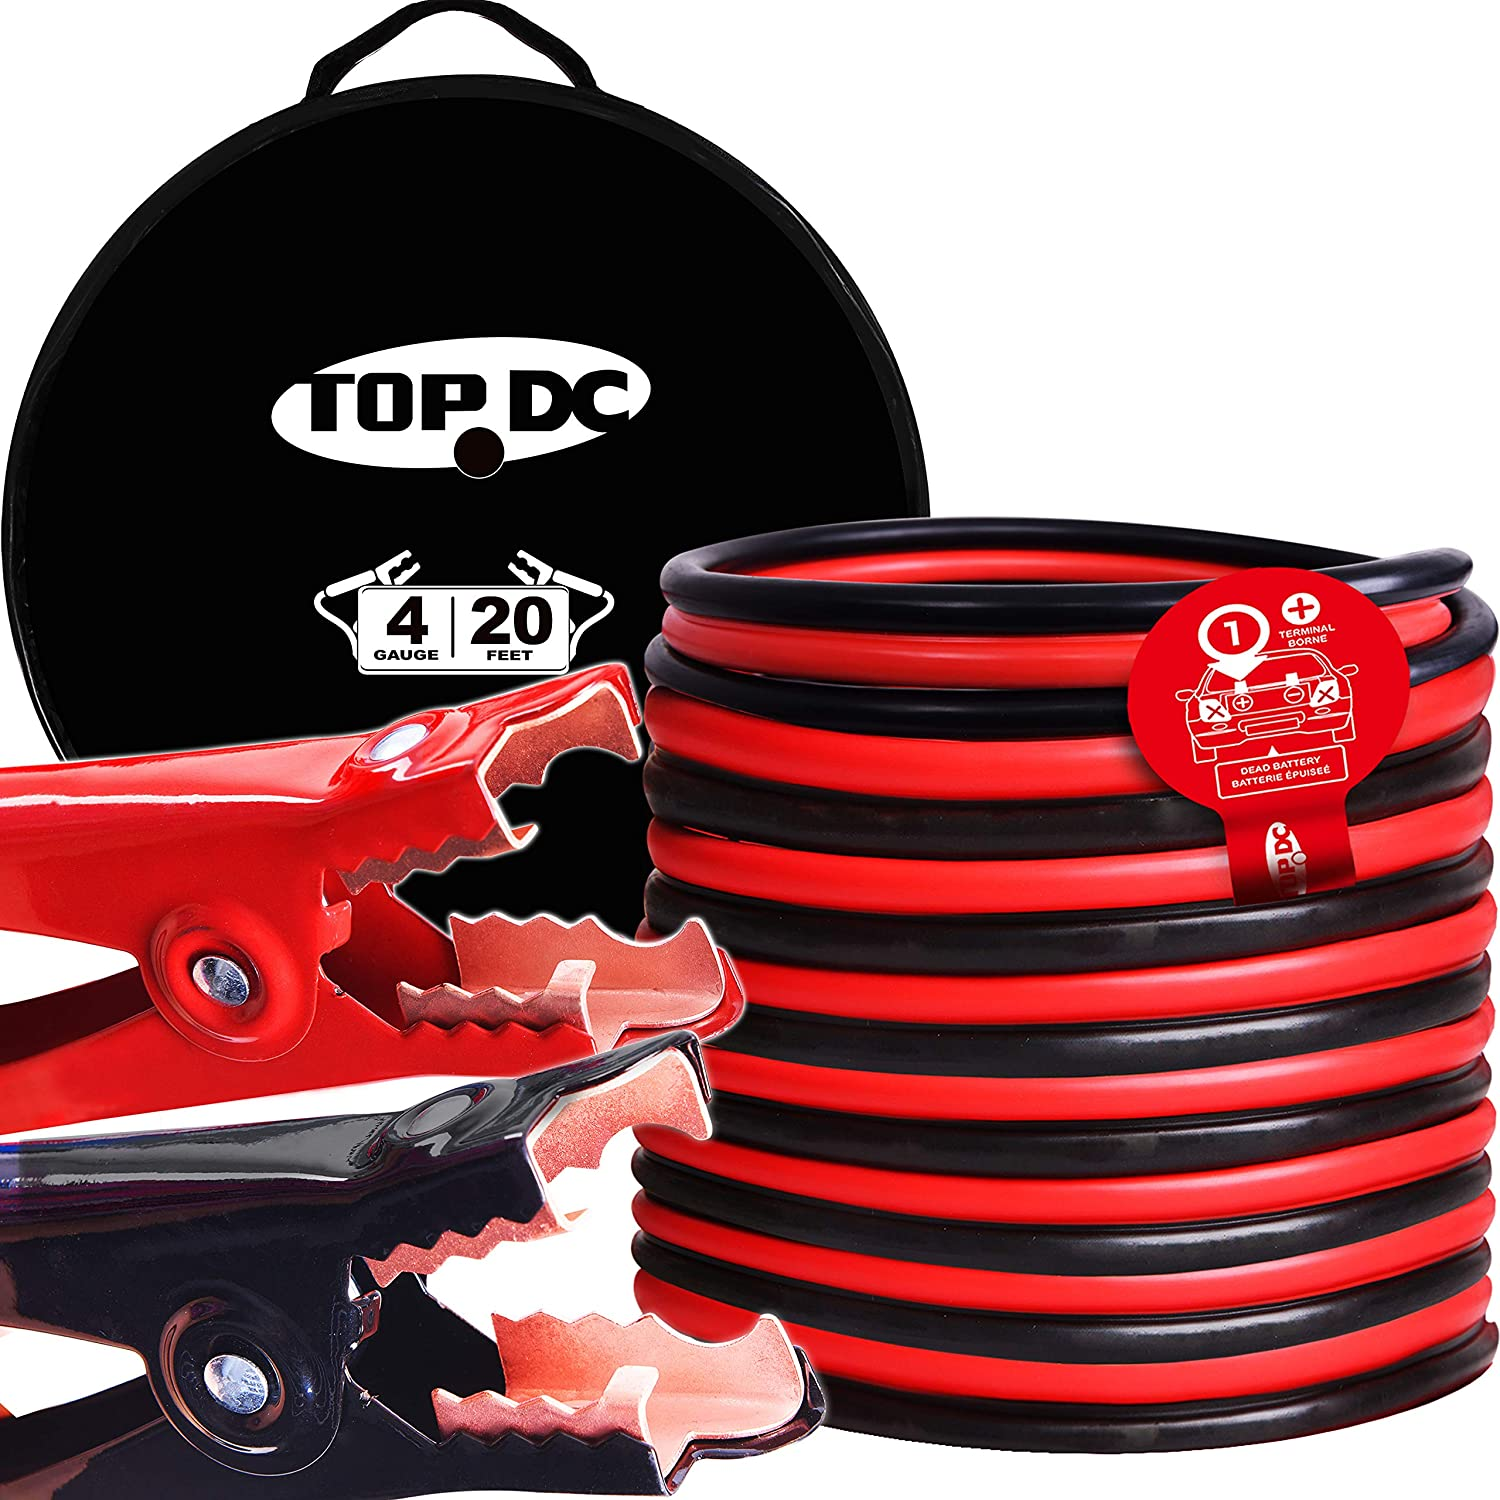 TOPDC Jumper Cables store 4 Gauge 20 -40℉ to Feet Heavy 167℉ Limited time cheap sale